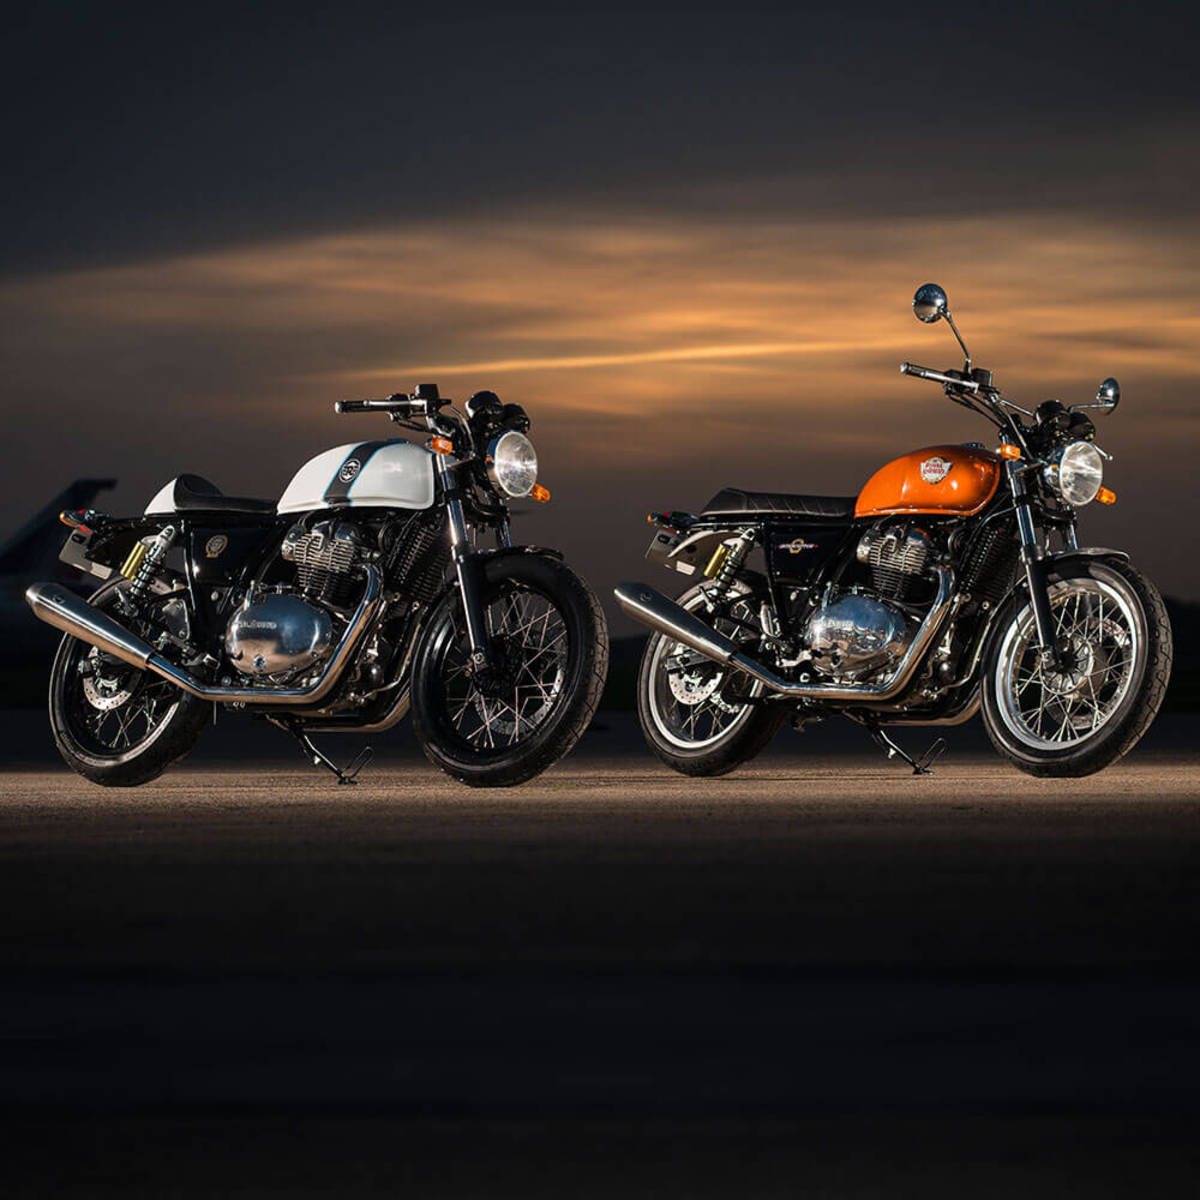 Royal Enfield introduces two new bikes powered by their 650 Twin